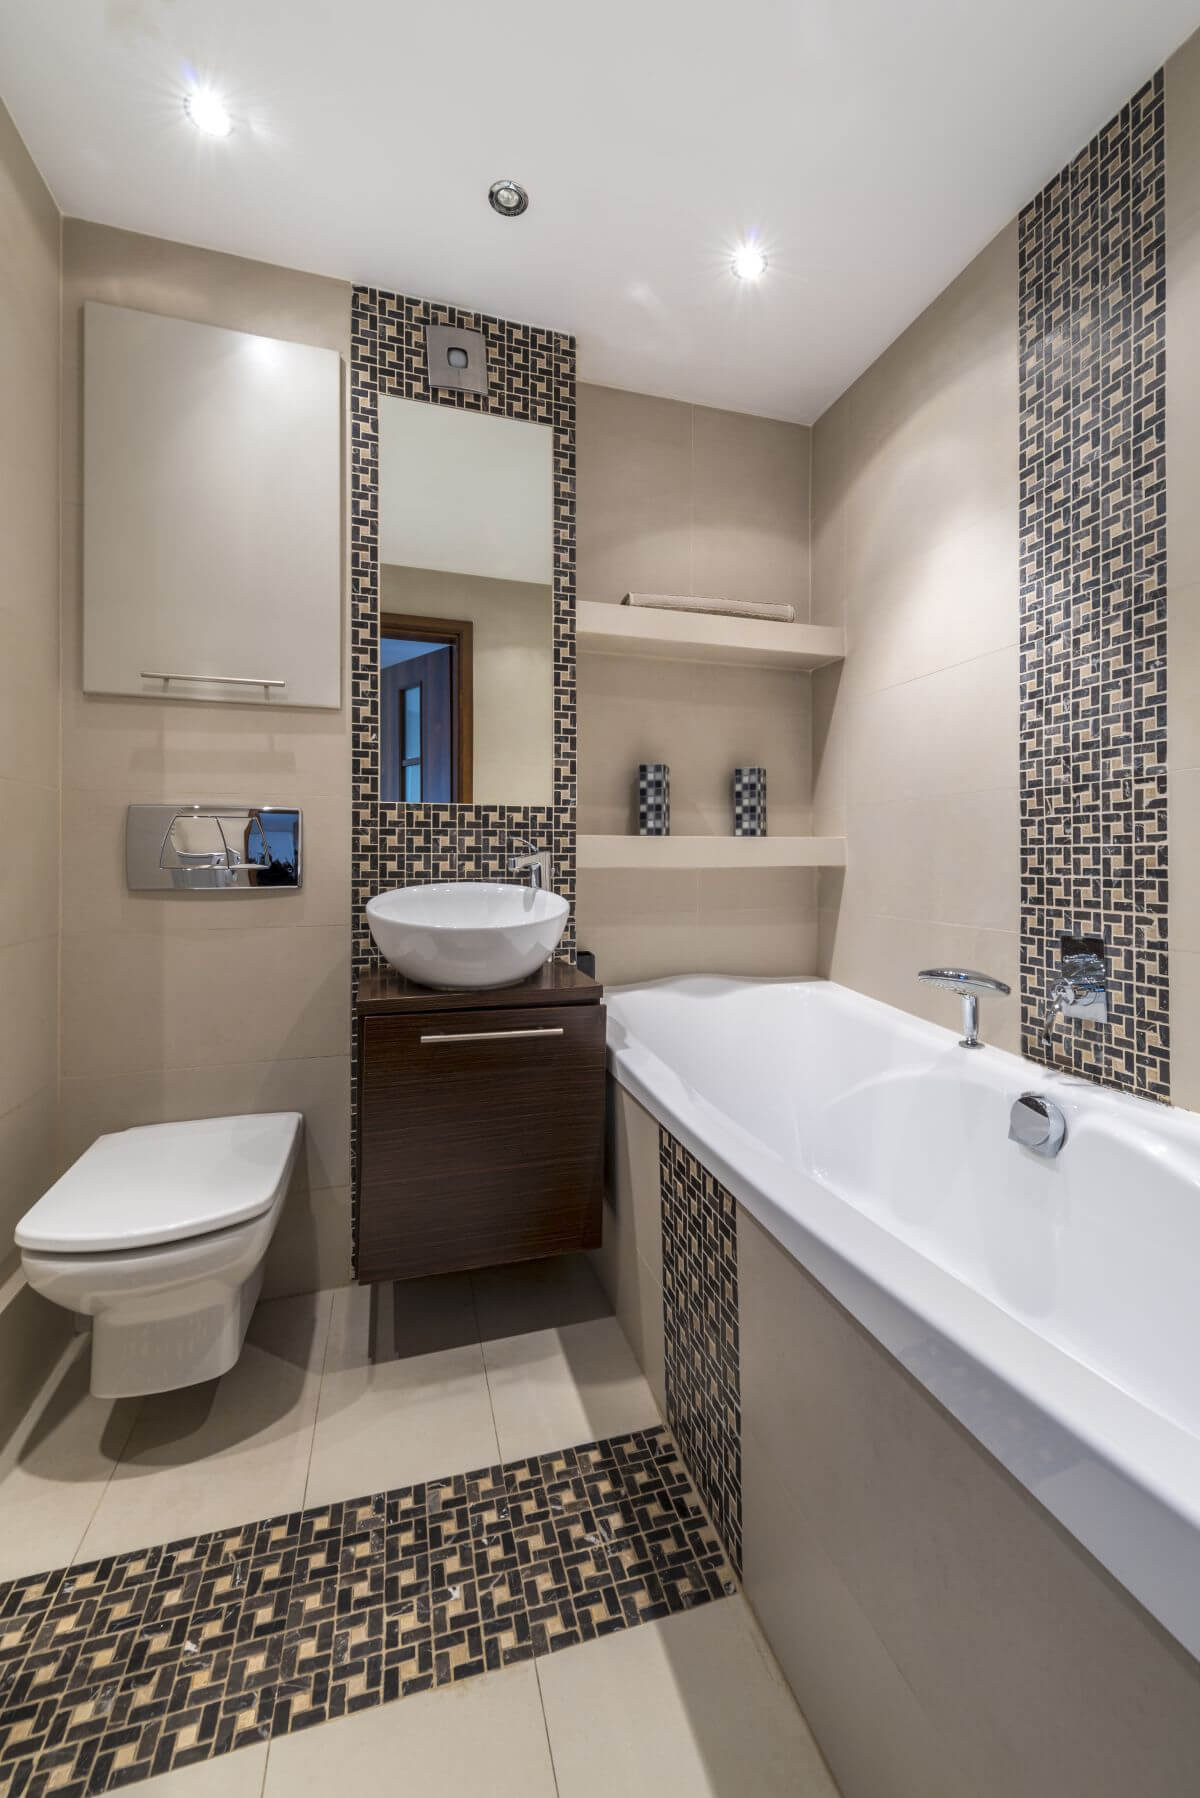 Best ideas about Small Bathroom Remodel . Save or Pin 32 Best Small Bathroom Design Ideas and Decorations for 2019 Now.